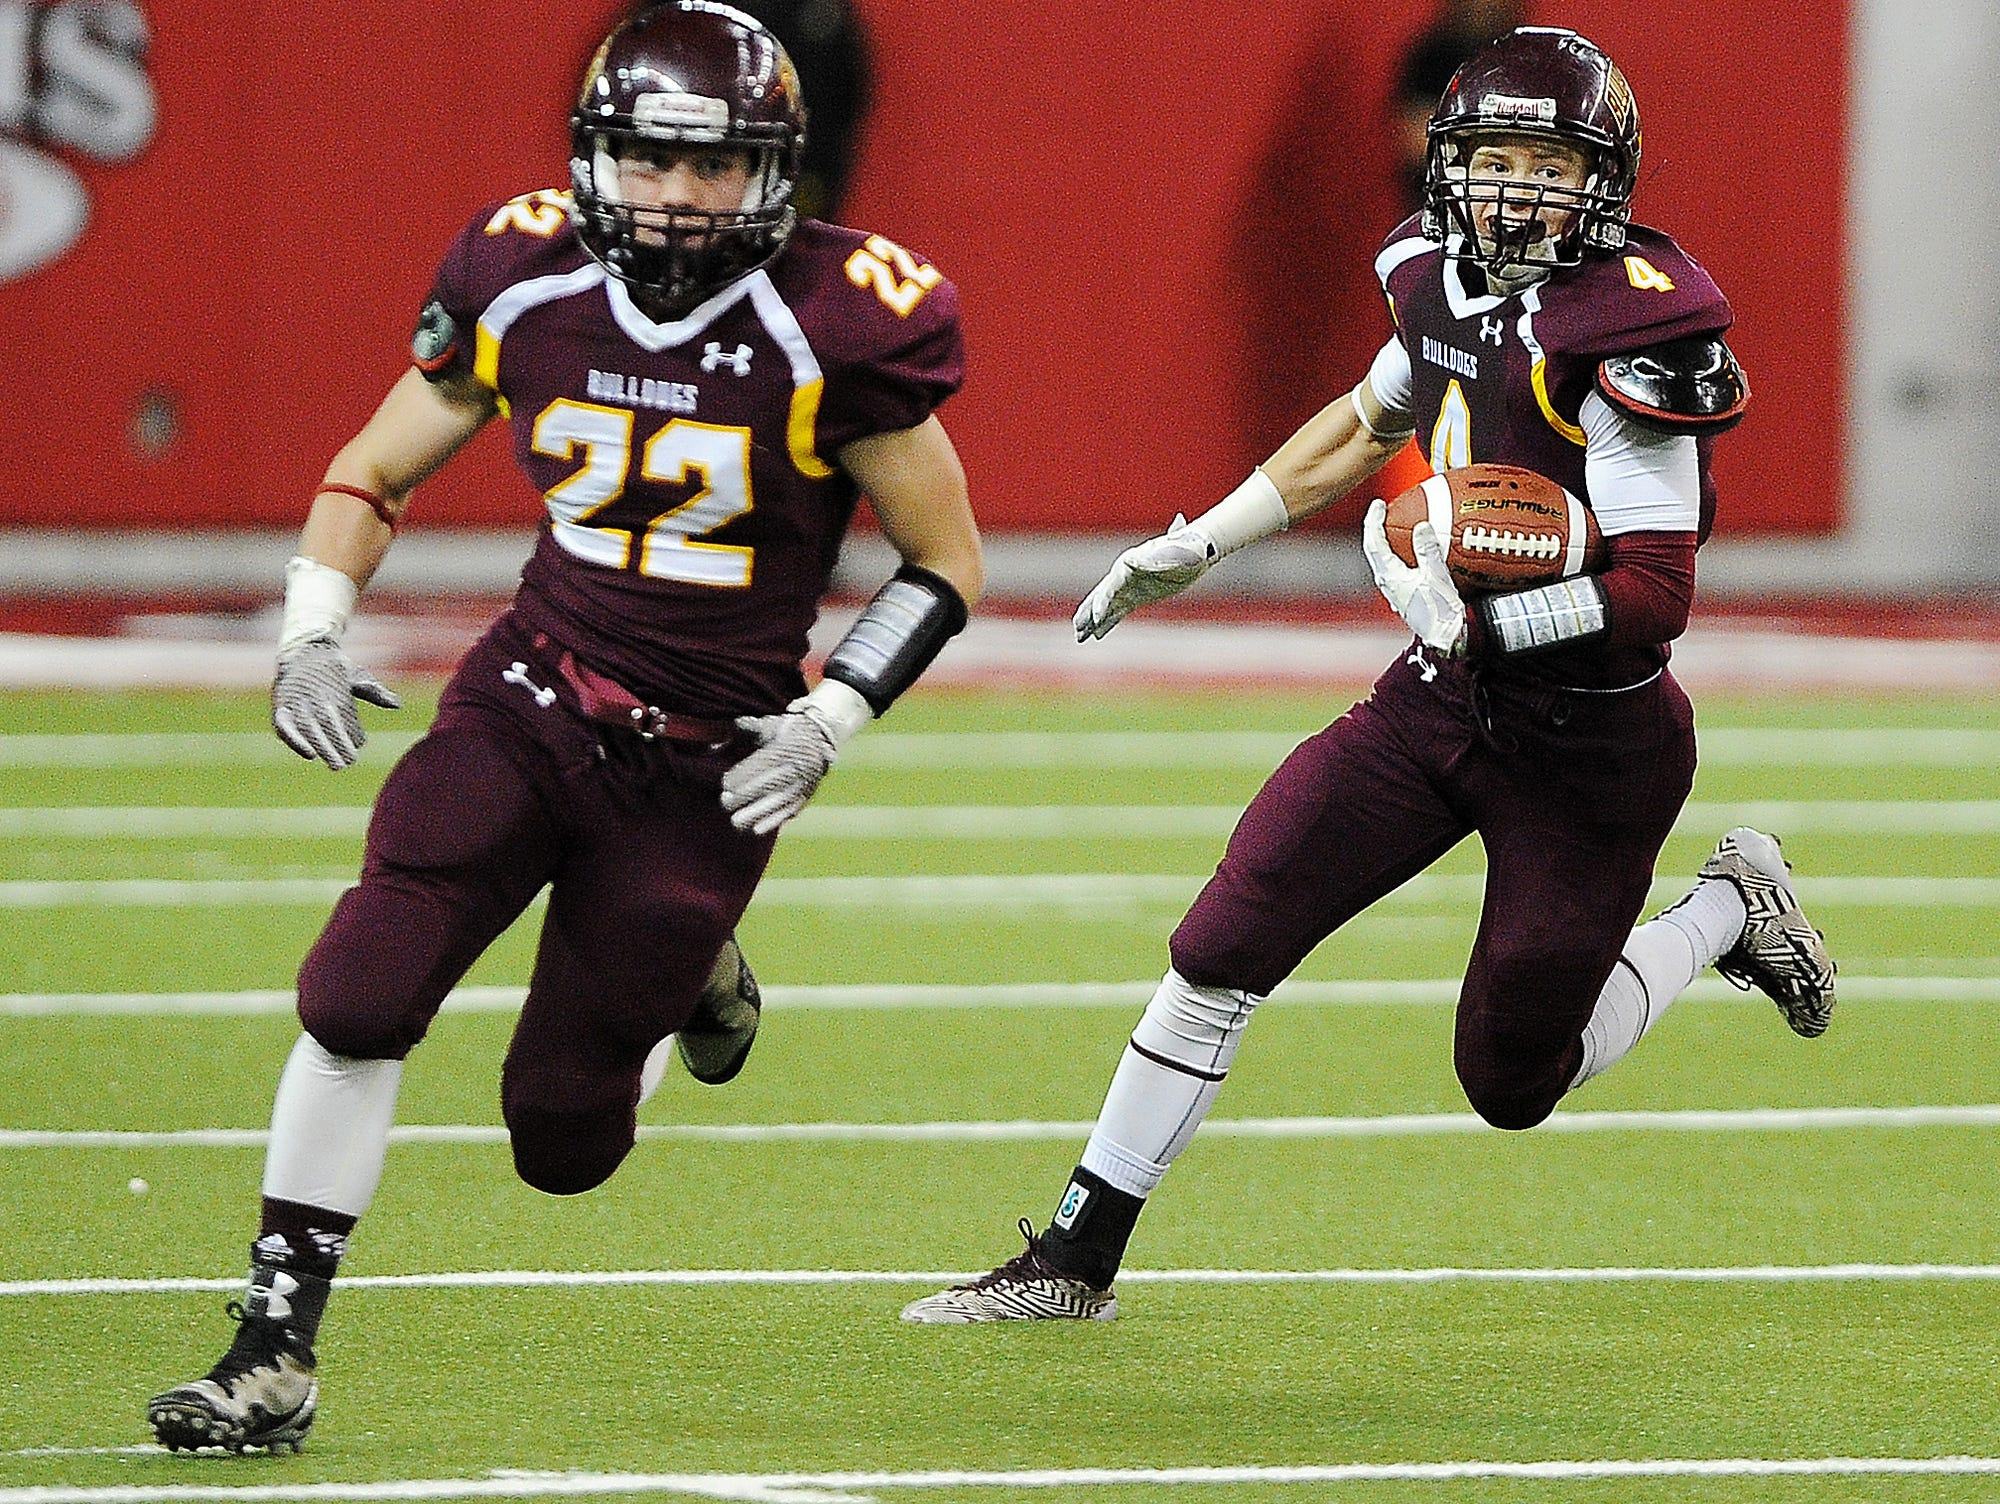 Madison's Mason Leighton (4) carries the ball during the first half of the 2014 South Dakota state Class 11A Championship game against Dell Rapids on Thursday, Nov. 13, 2014, at the DakotaDome in Vermillion, S.D.